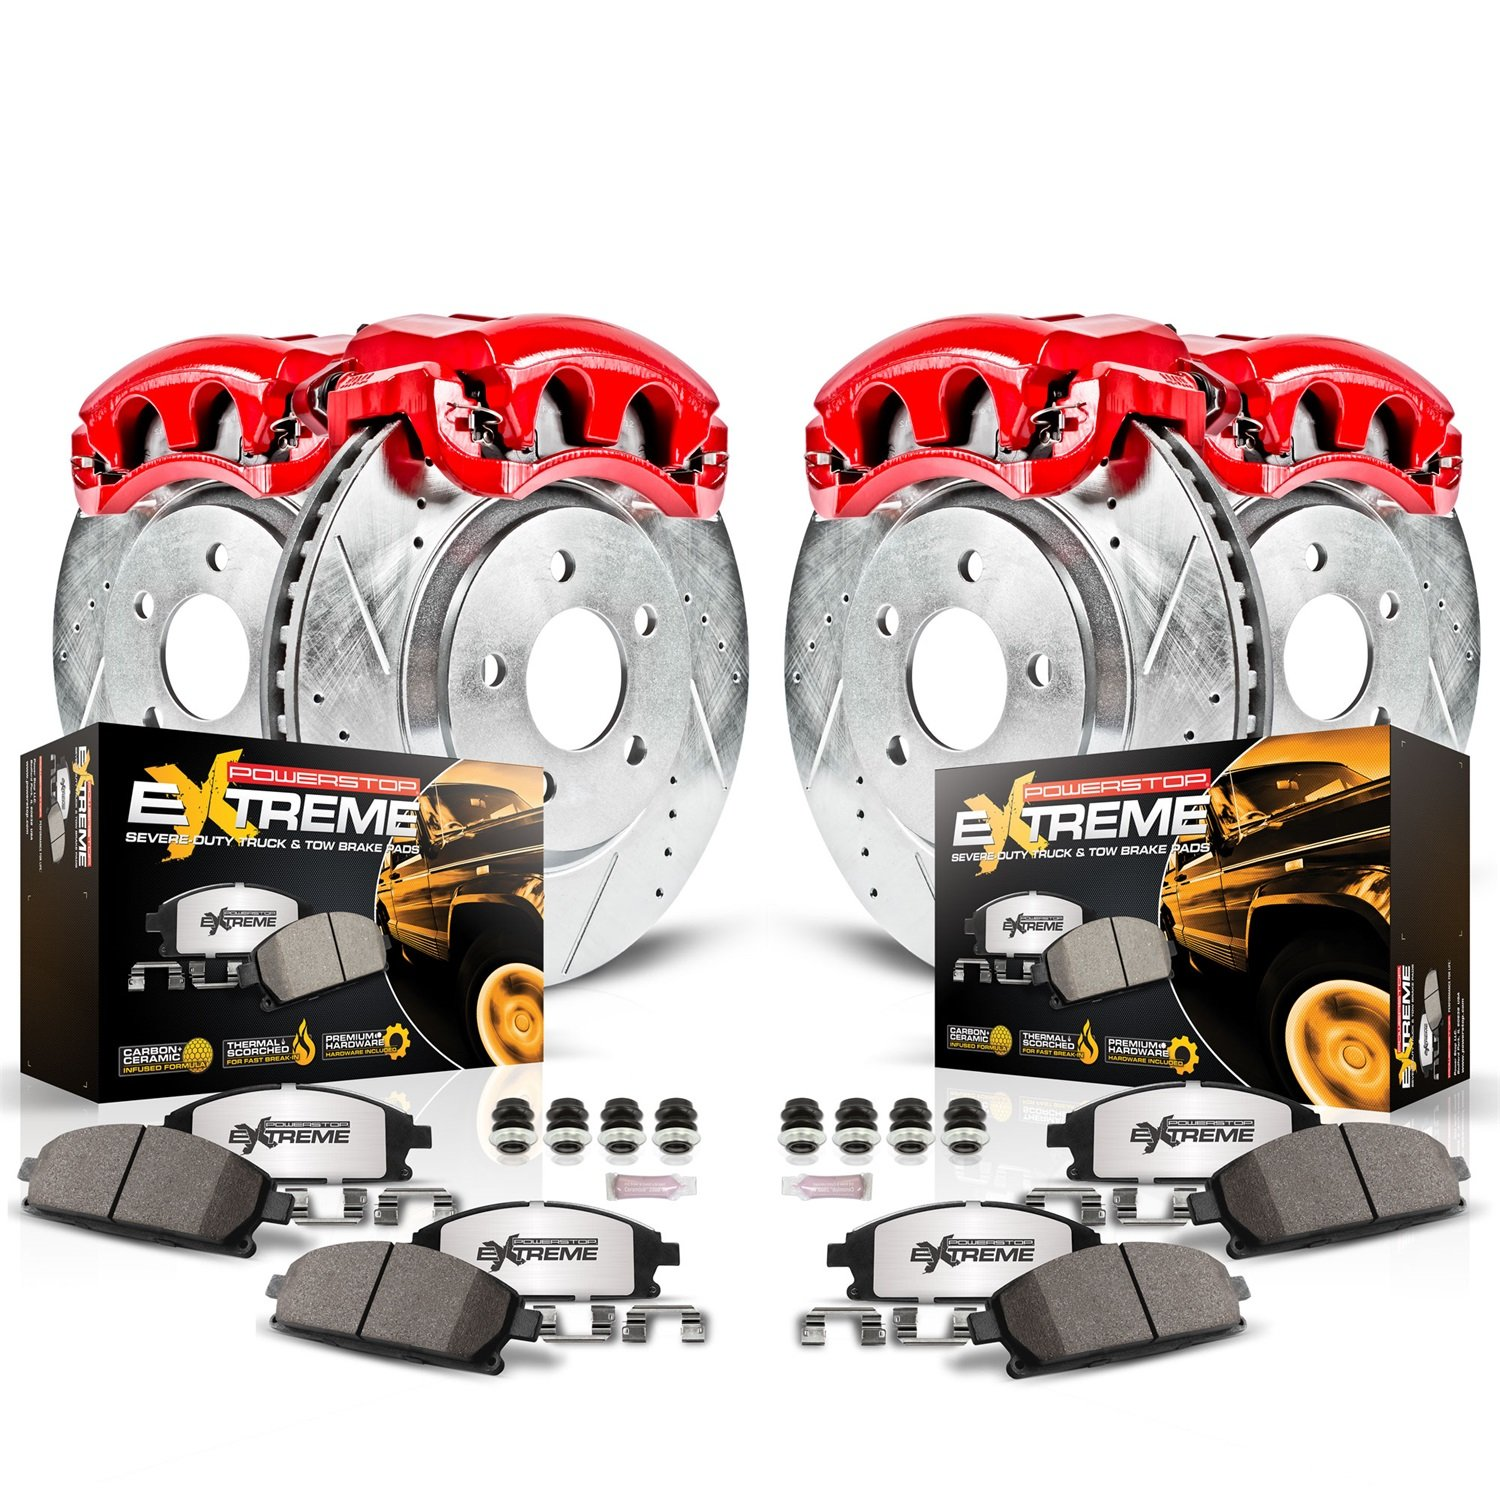 Power Stop Kc6560 36 Front Rear Z36 Truck And Tow Hit Run Comes To Powerblock Powerblog Brake Kit With Calipers Automotive